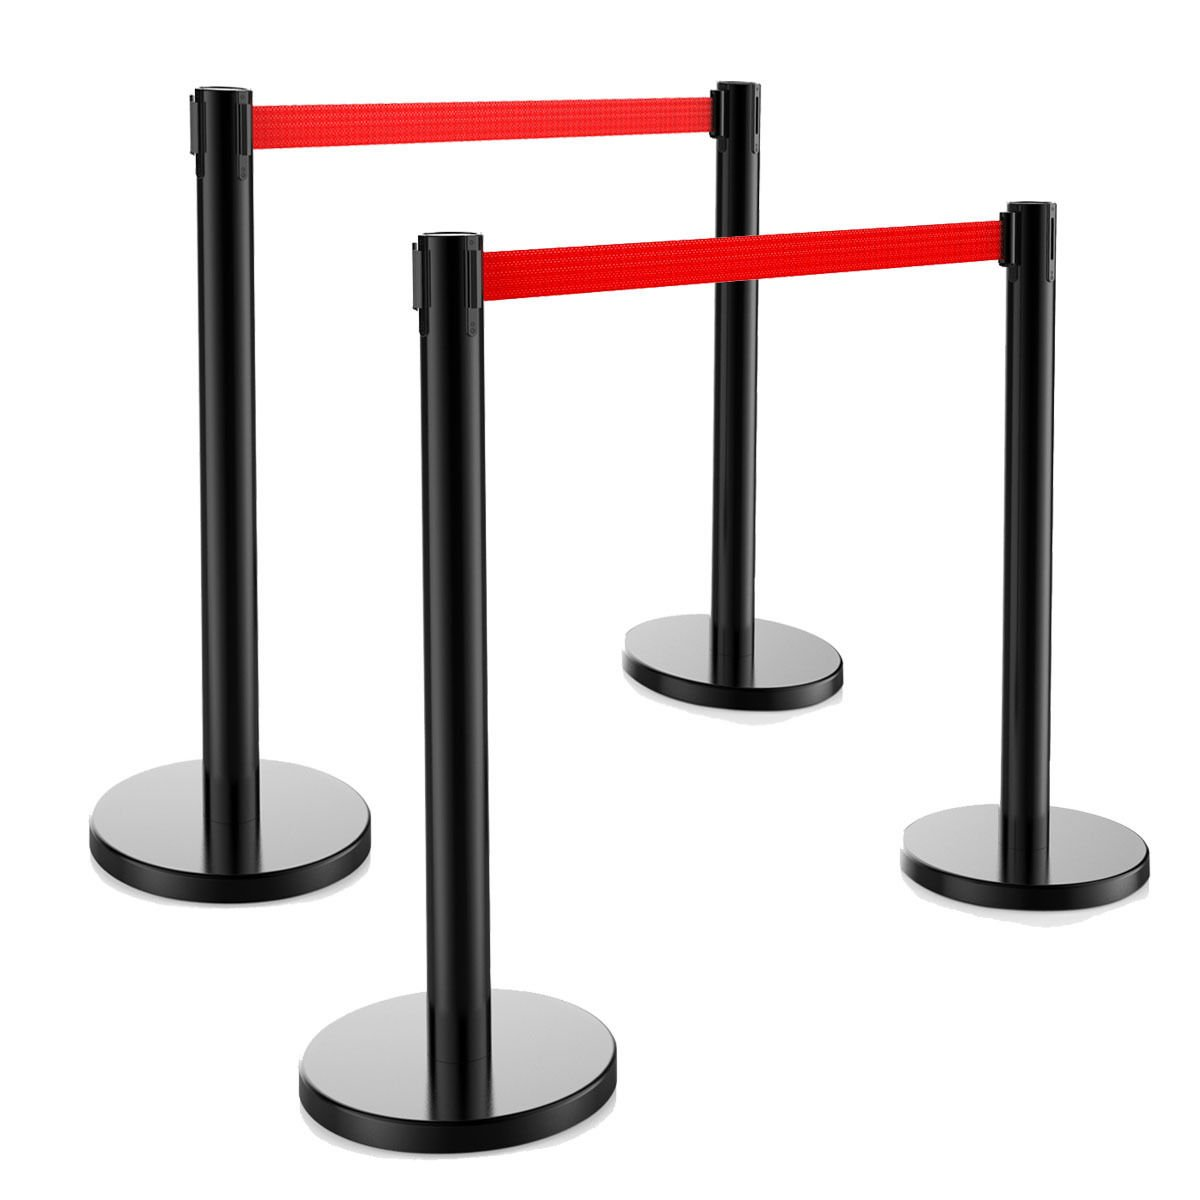 4 PCS Crowd Control Barrier Stanchion Posts Queue Pole Retractable Red Belt